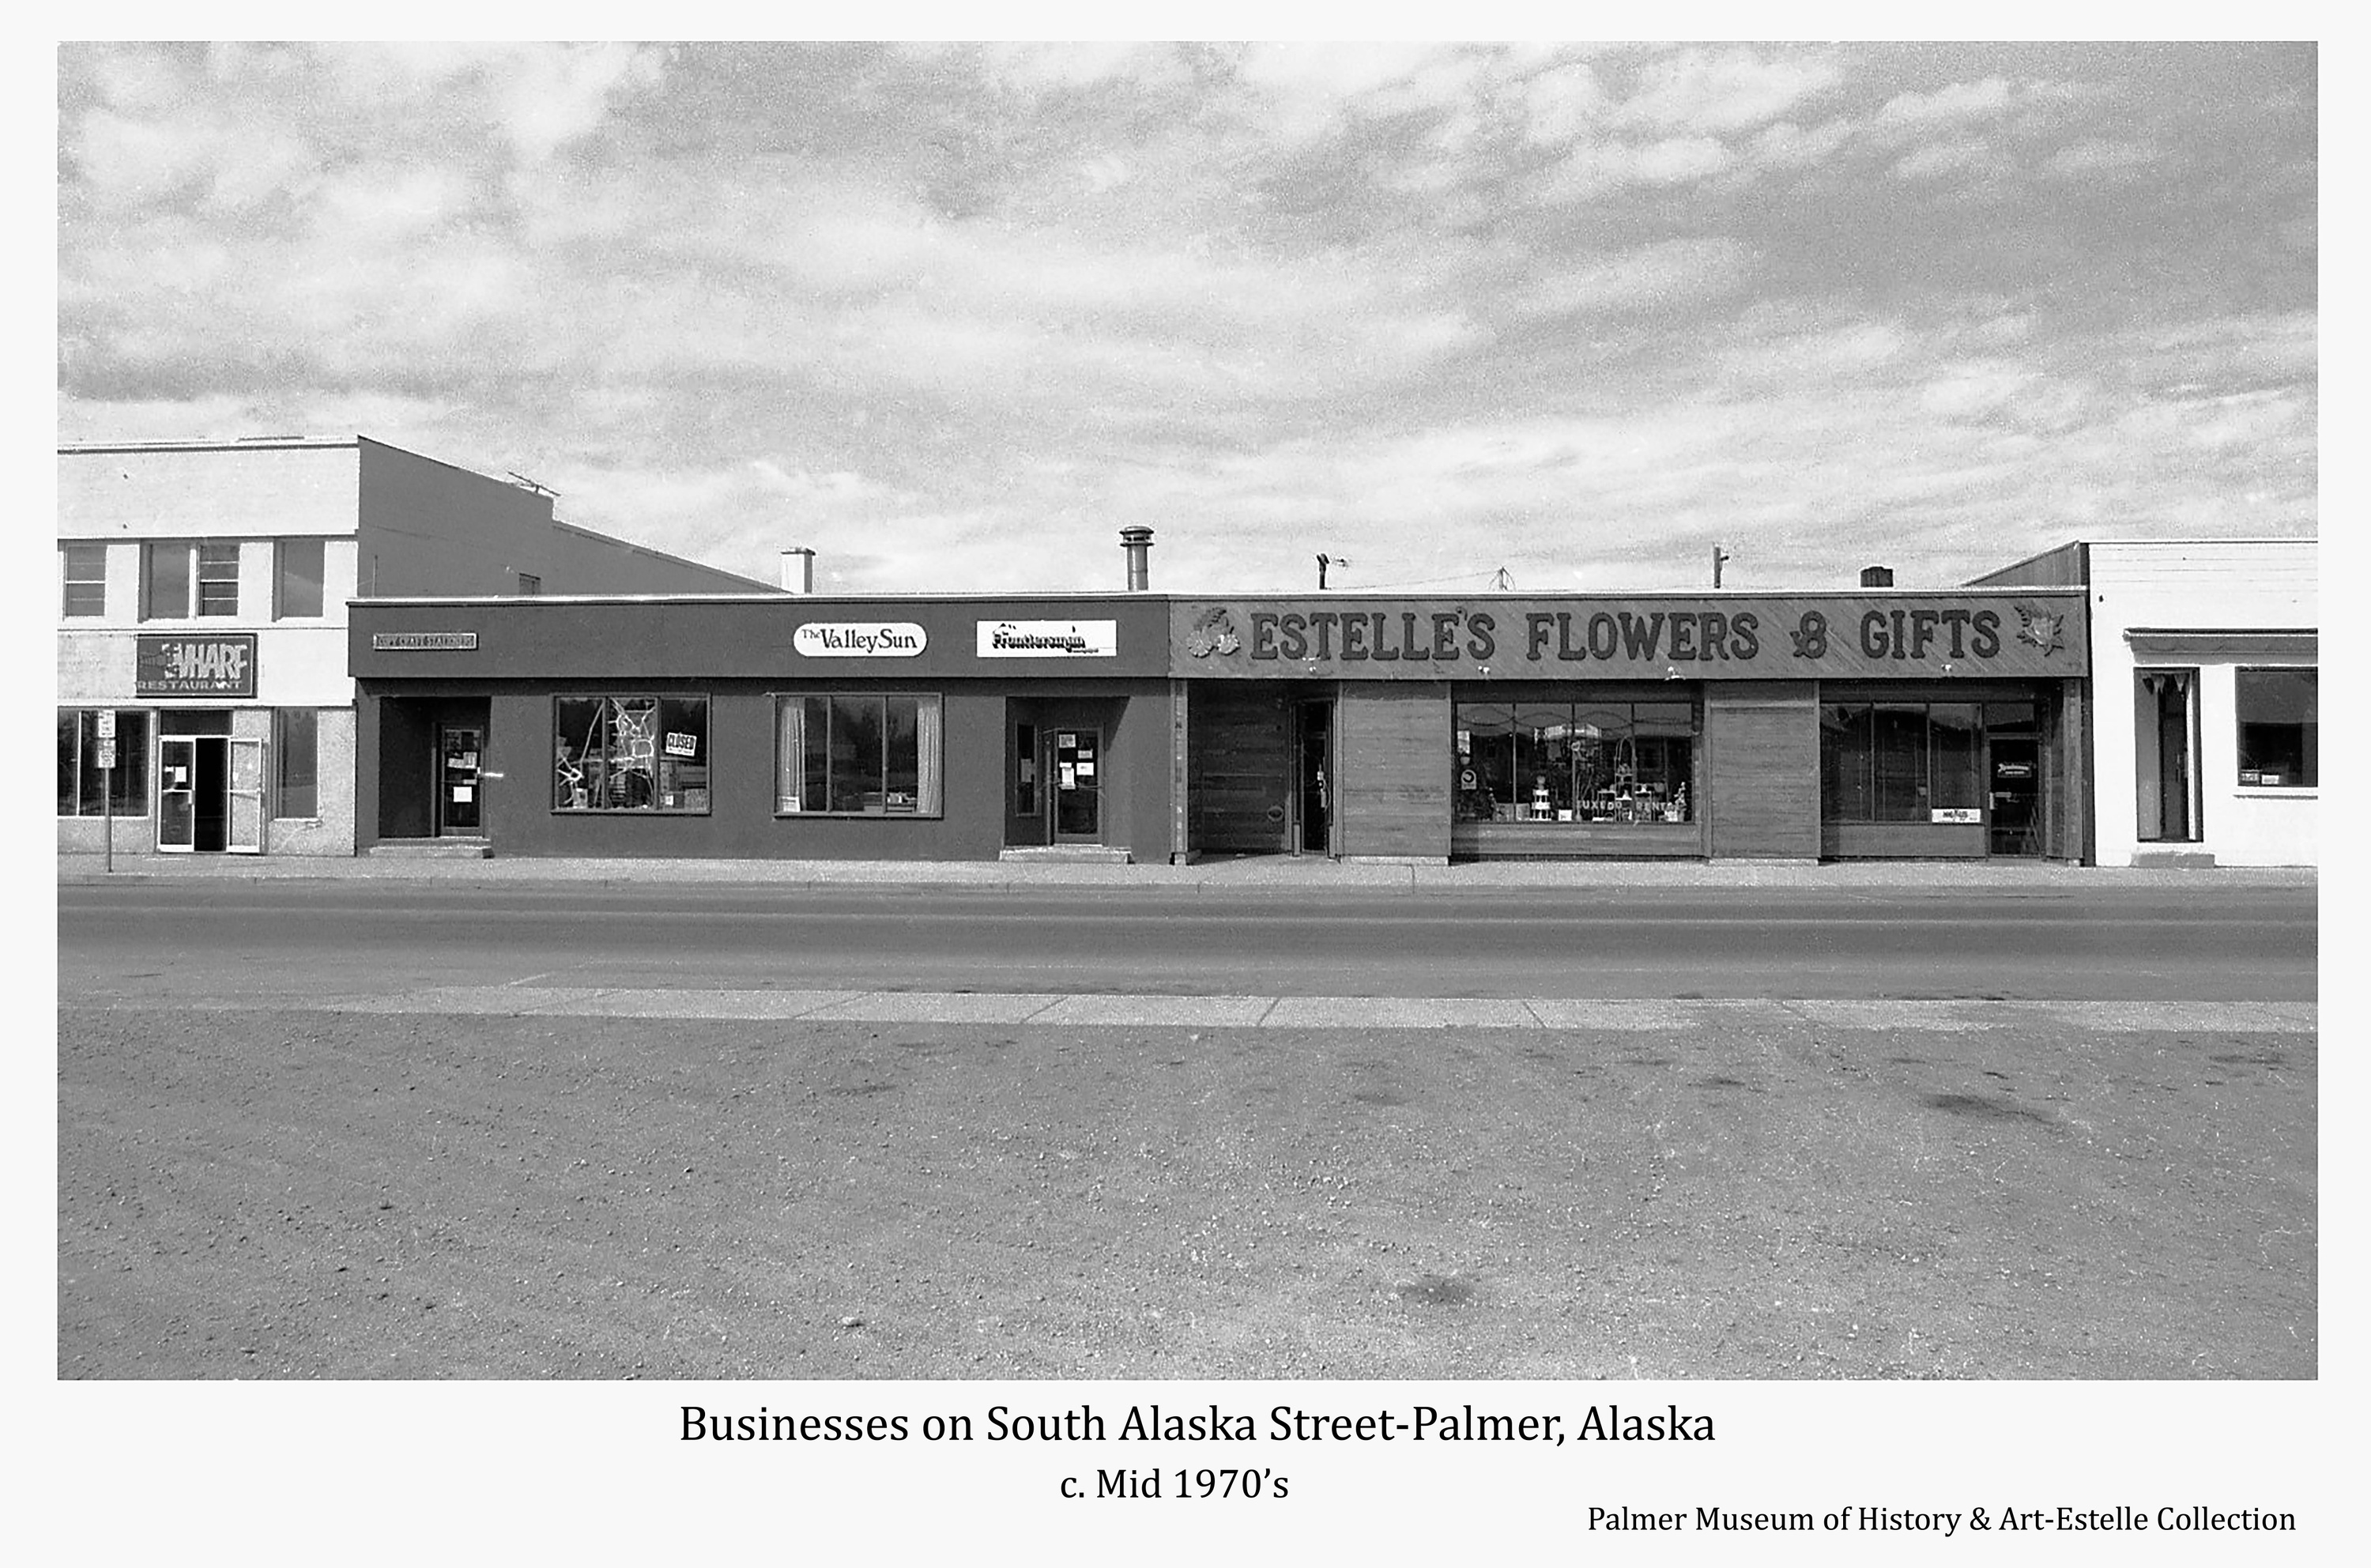 Image is a street view of businesses on the west side of South Alaska Way located between West Evergreen and West Dahlia Avenues.  Signs identify businesses shown as The Warf Restaurant, City Craft Station, The Valley Sun, Valley Frontiersman, and Estelle's Flowers and Gifts.  Part of the building occupied at the time by Allen & Peterson is visible at right.